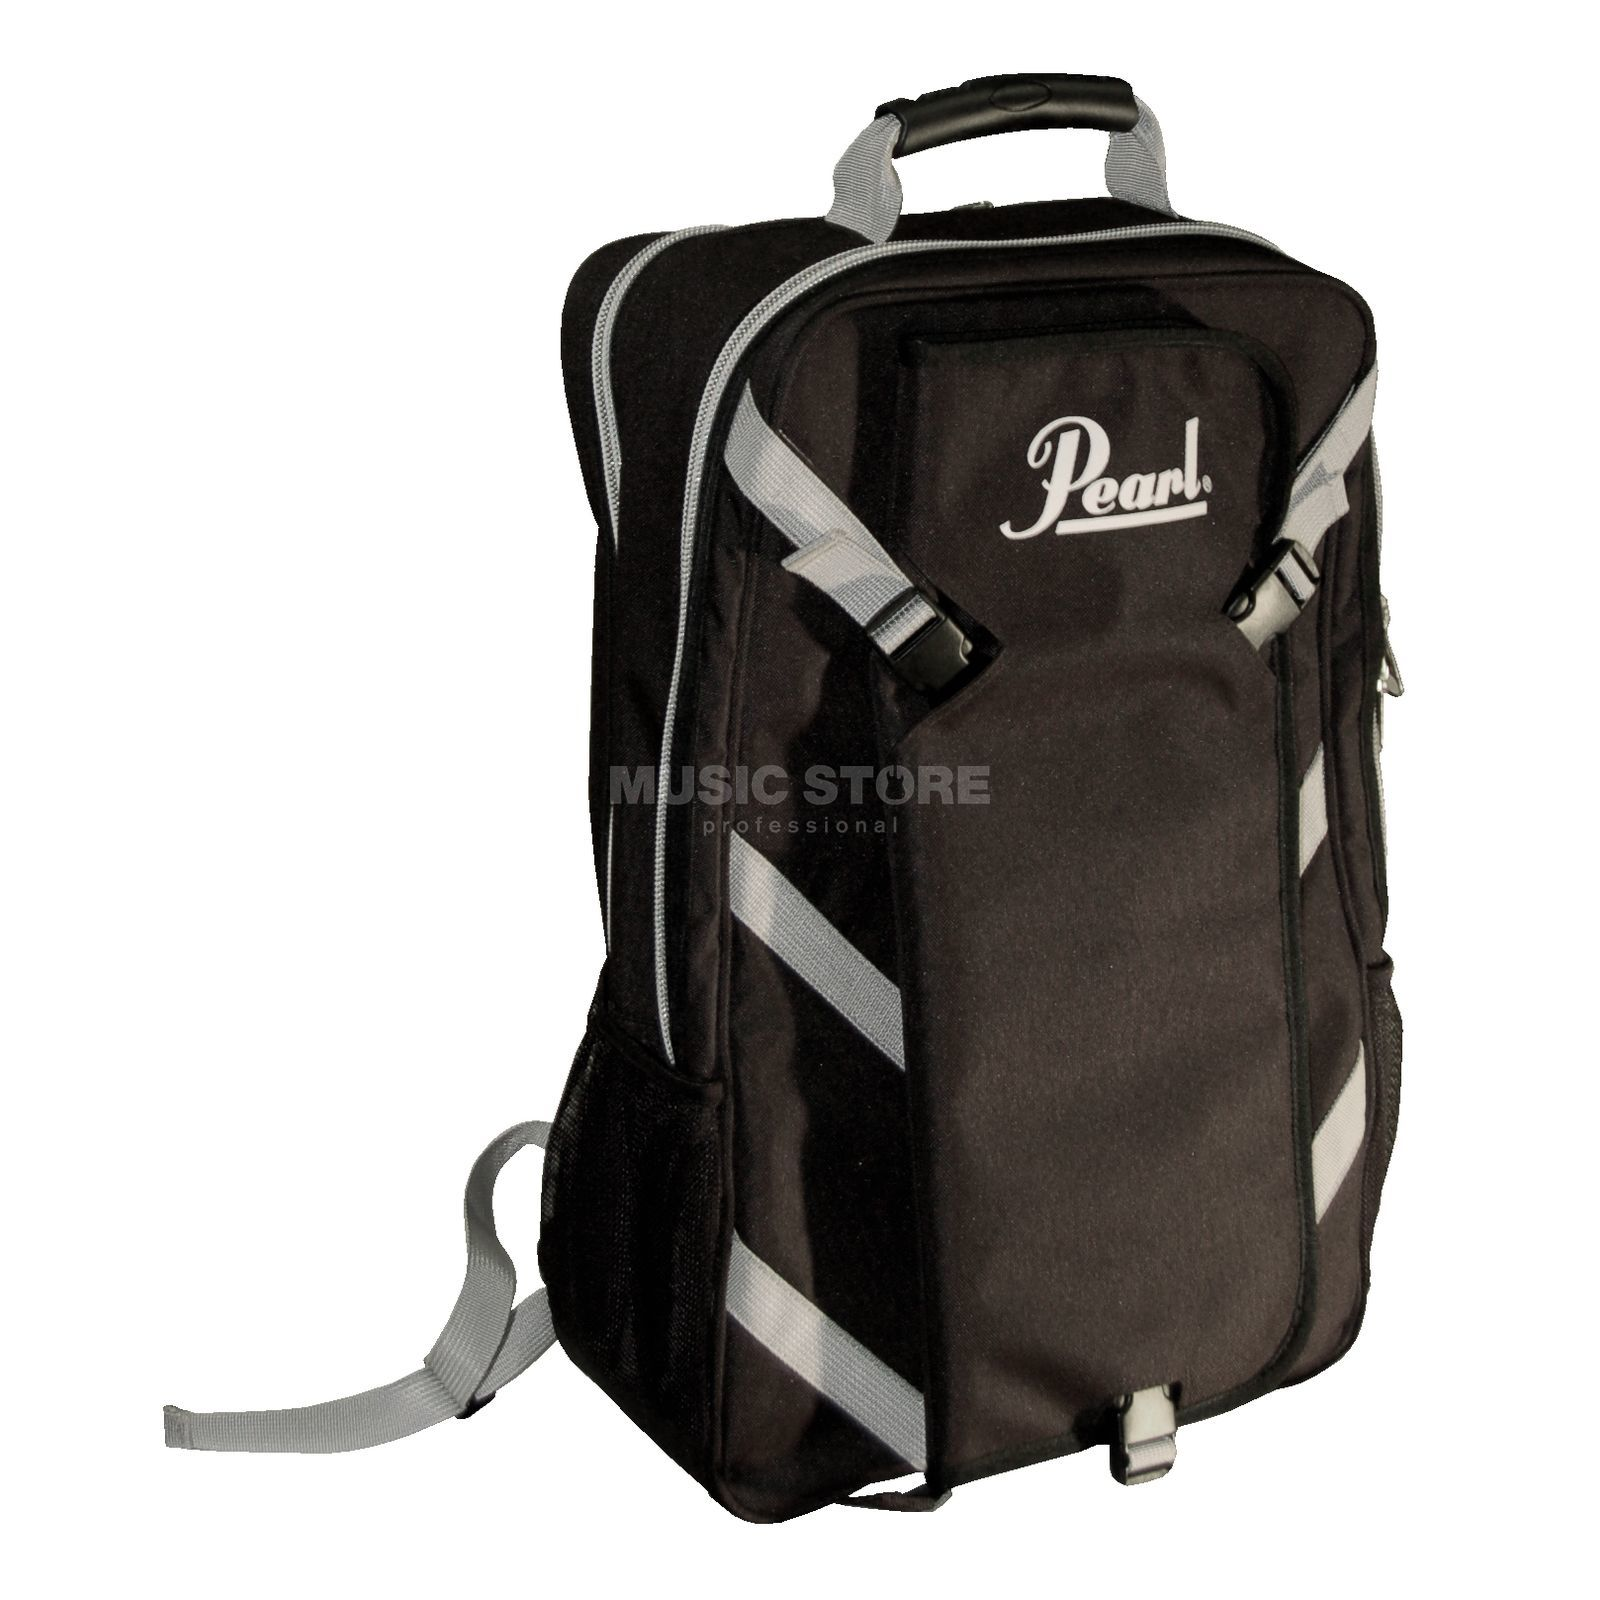 Pearl Backpack PDBP01 incl. Stickbag Produktbillede